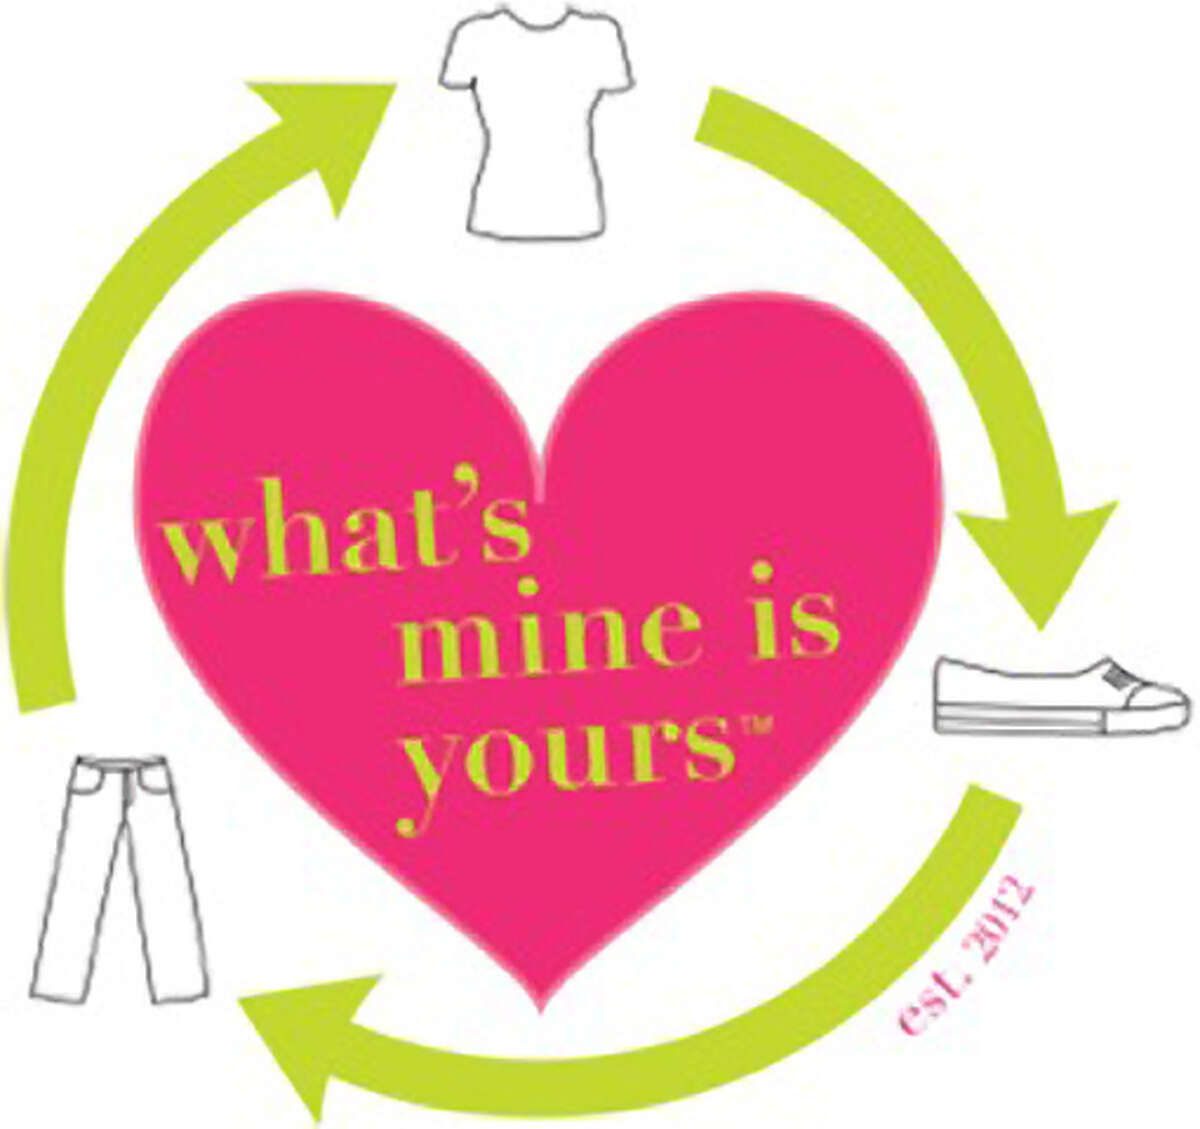 Paige Blake and Katie Easterly started What's Mine Is Yours, which has donated 13,000 pieces of clothing to girls in Alameda and Contra Costa counties and works with 16 local agencies.